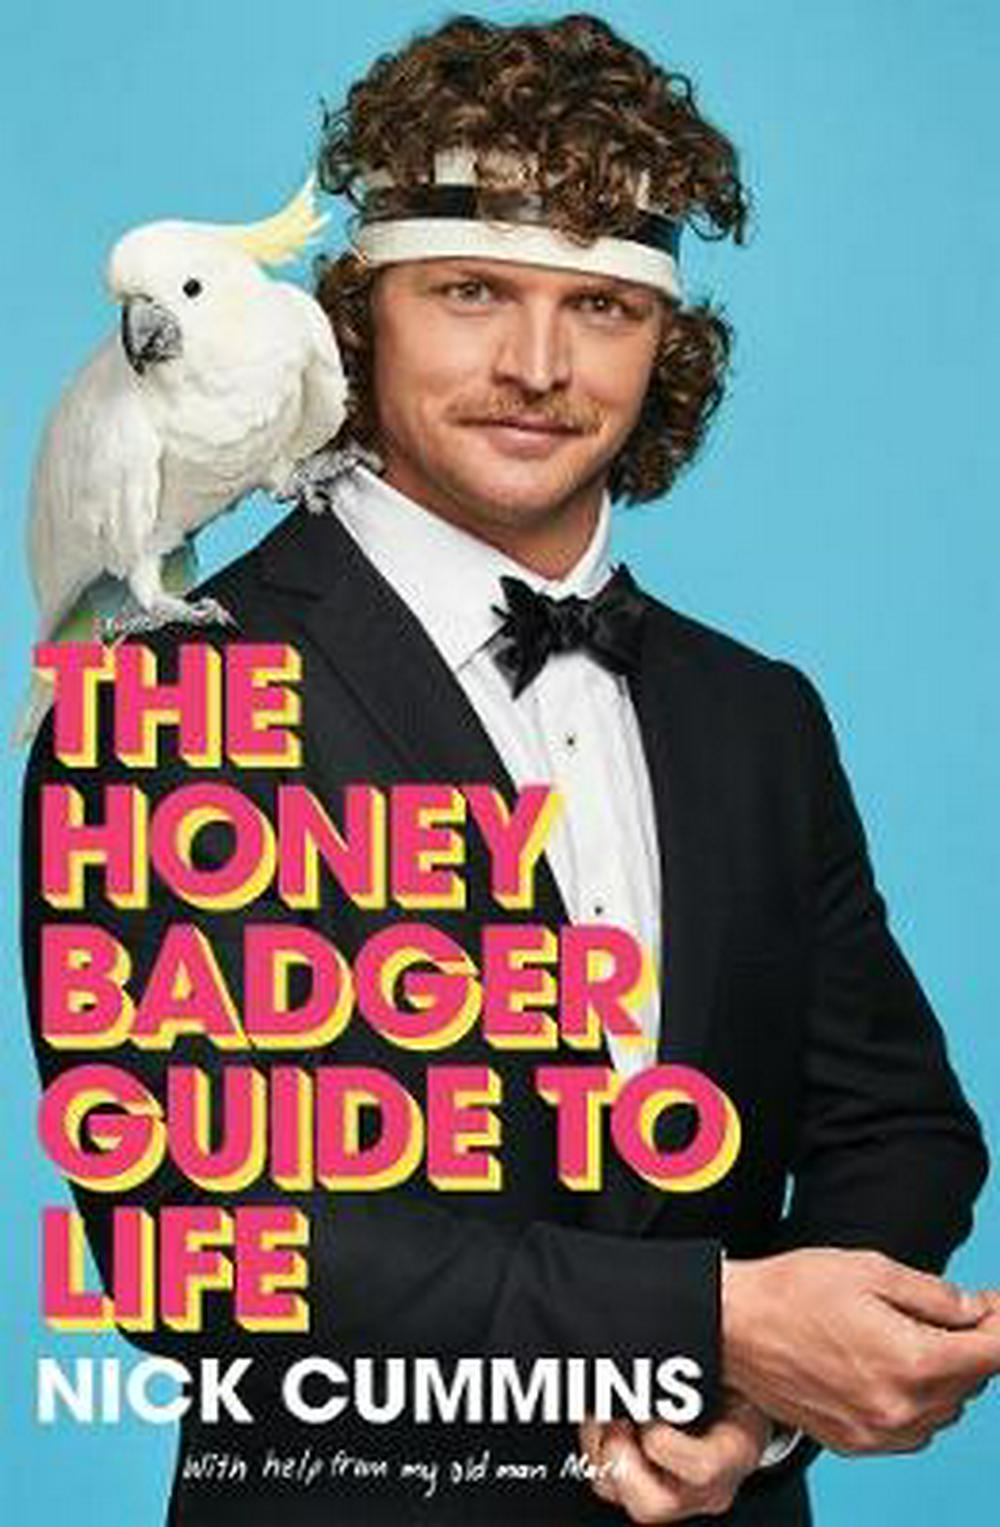 The Honey Badger Guide to Life by Nick Cummins, ISBN: 9781760558079